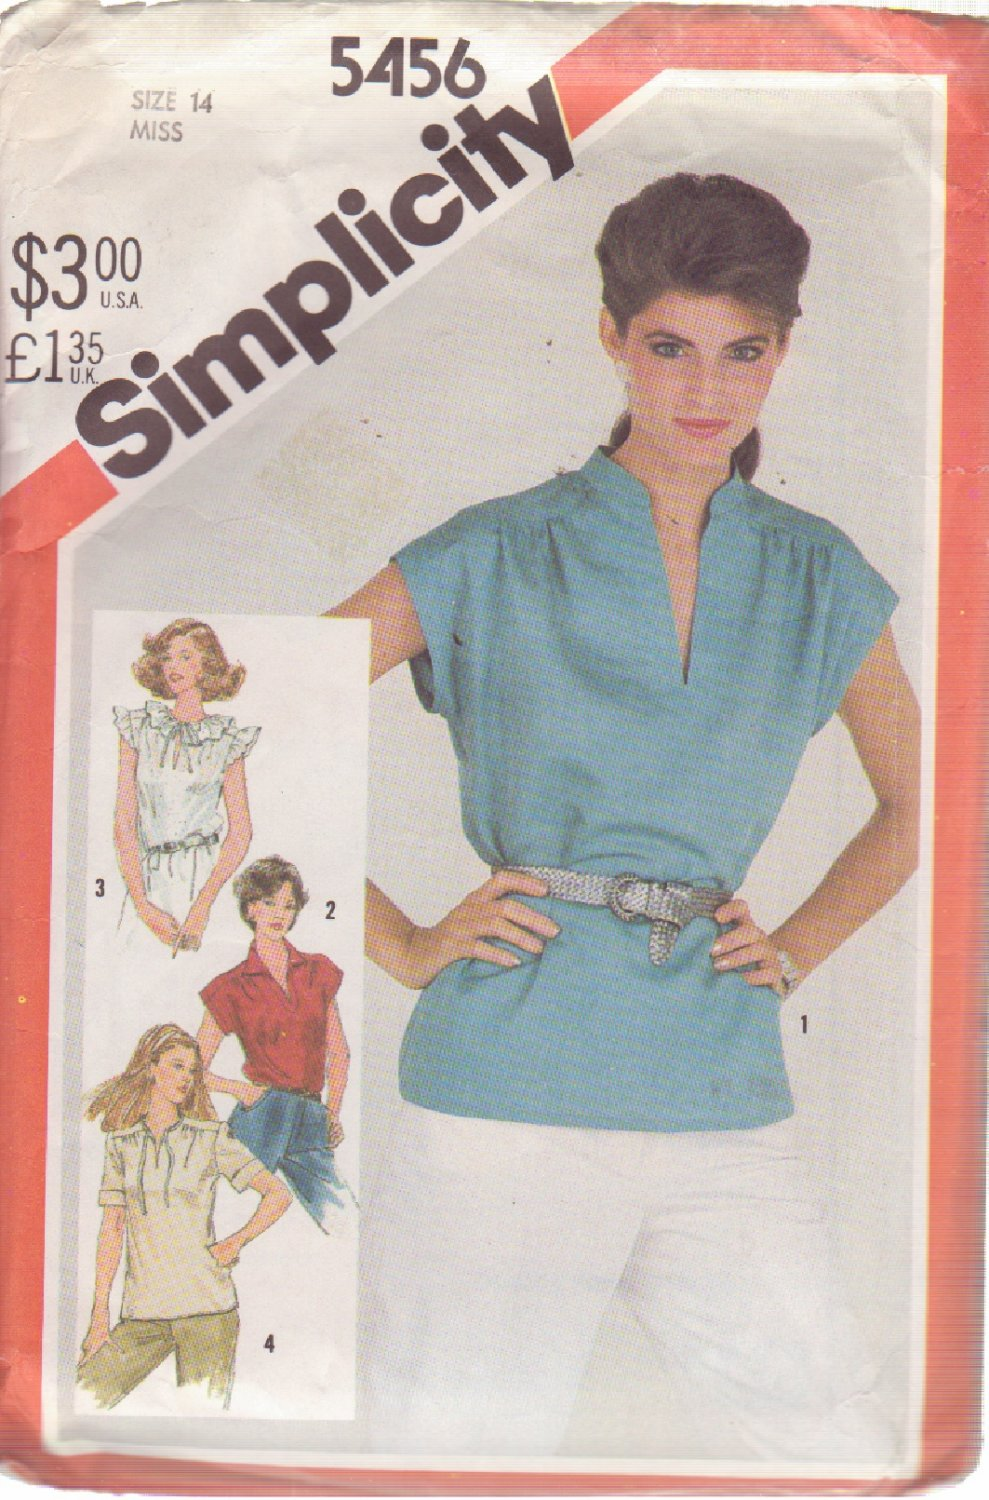 SIMPLICITY 5456 VINTAGE PATTERN MISSES' BLOUSE IN 4 VARIATIONS SIZE 14